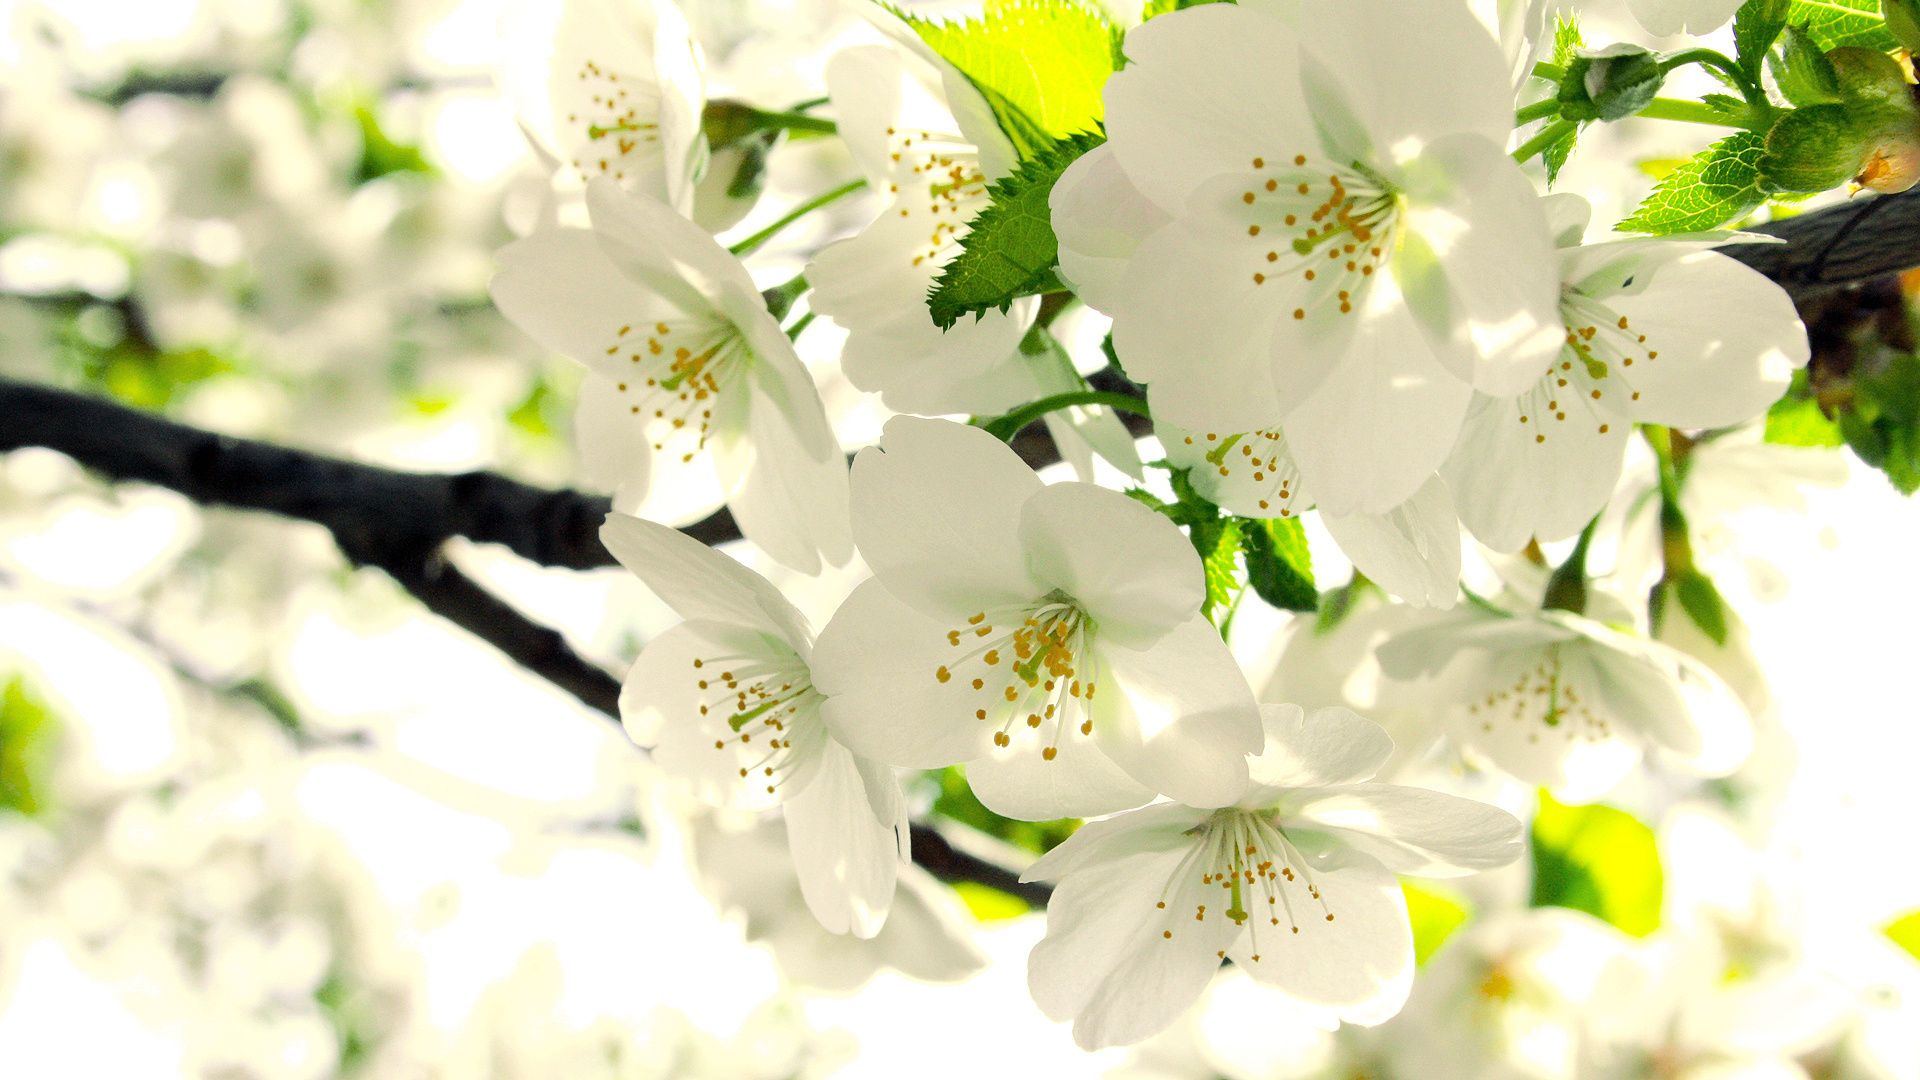 Image Result For Flowers Wallpaper Beautiful Flowers Photos Apple Tree Flowers Flower Photos